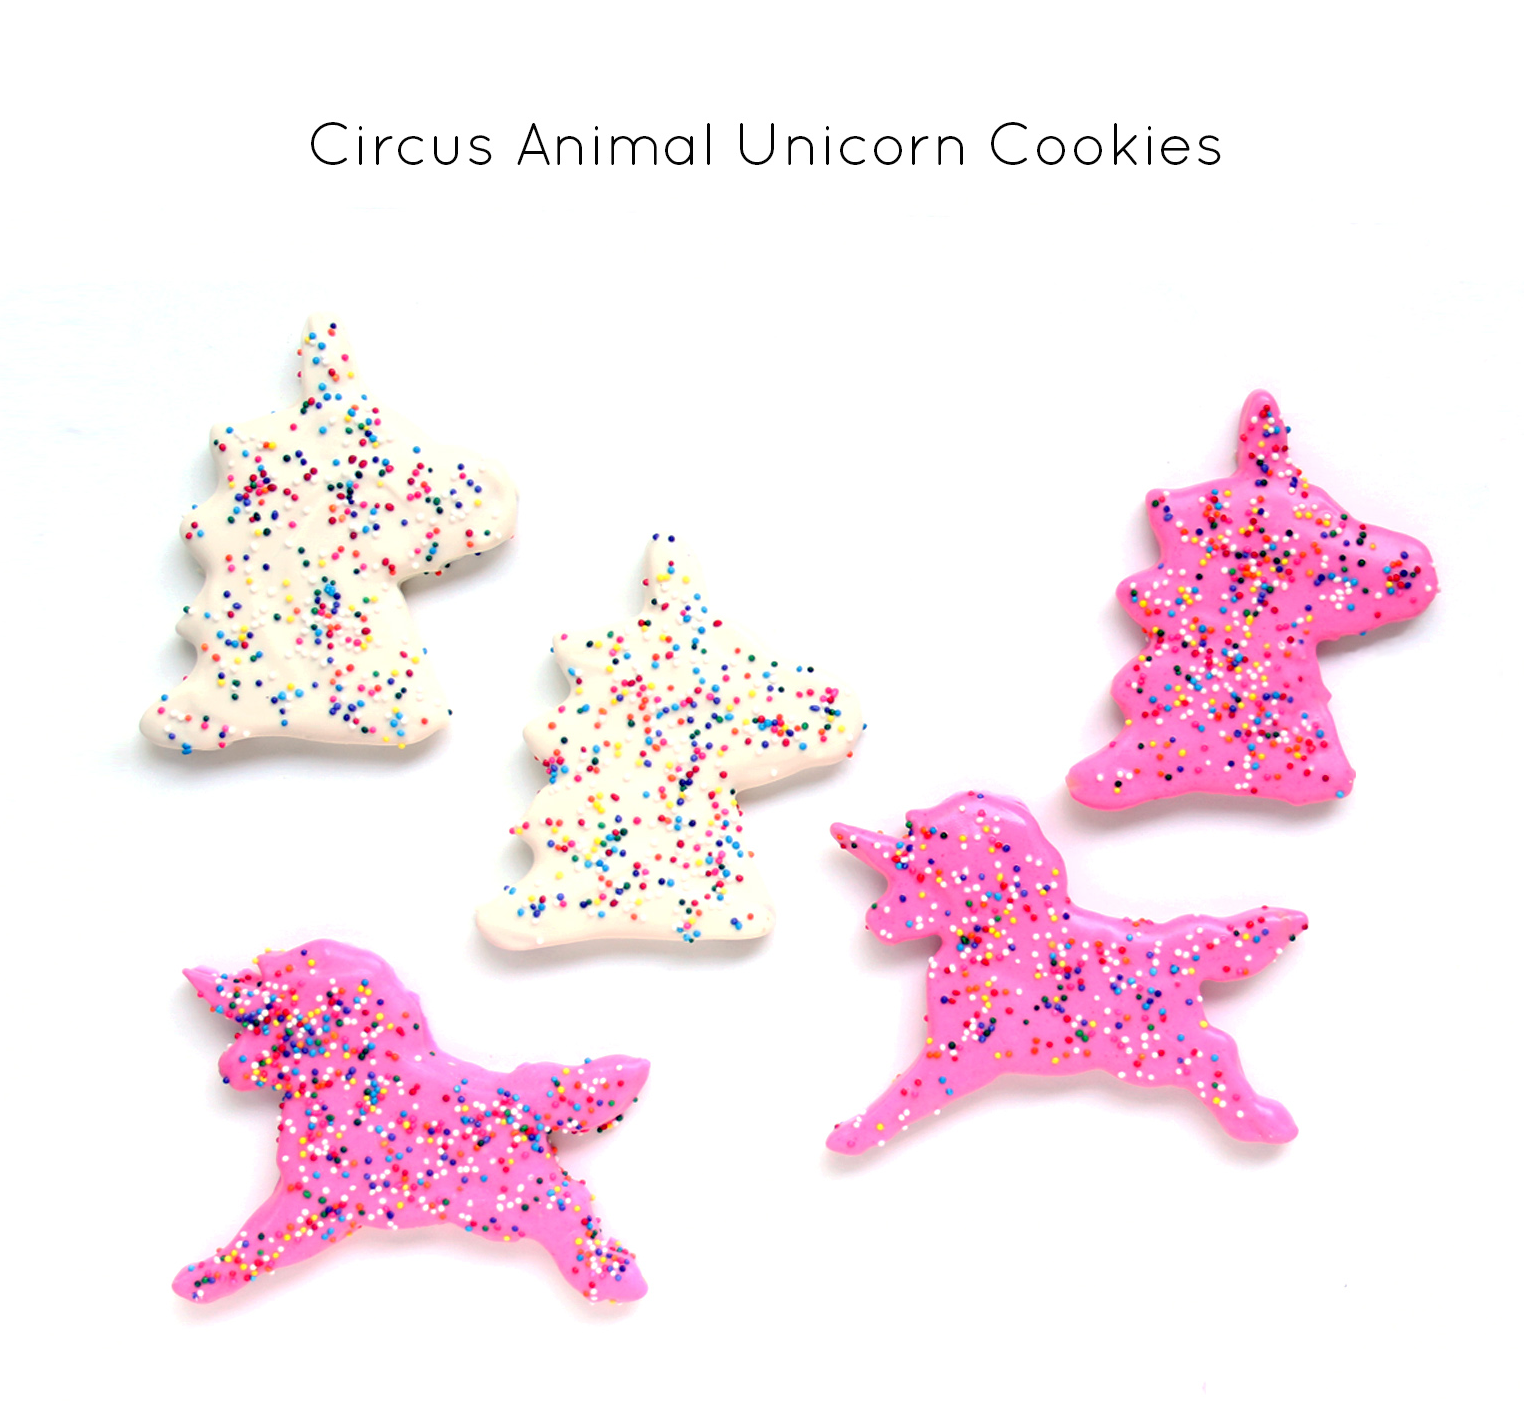 Homemade Circus Animal Unicorn Cookies